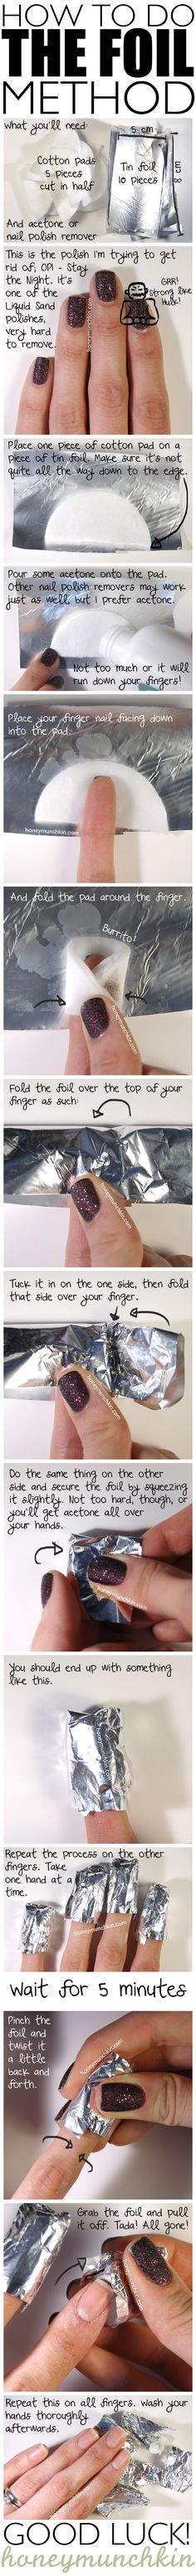 Tutorial: How to do the Foil Method ~ Maybe this time I'll get it right.